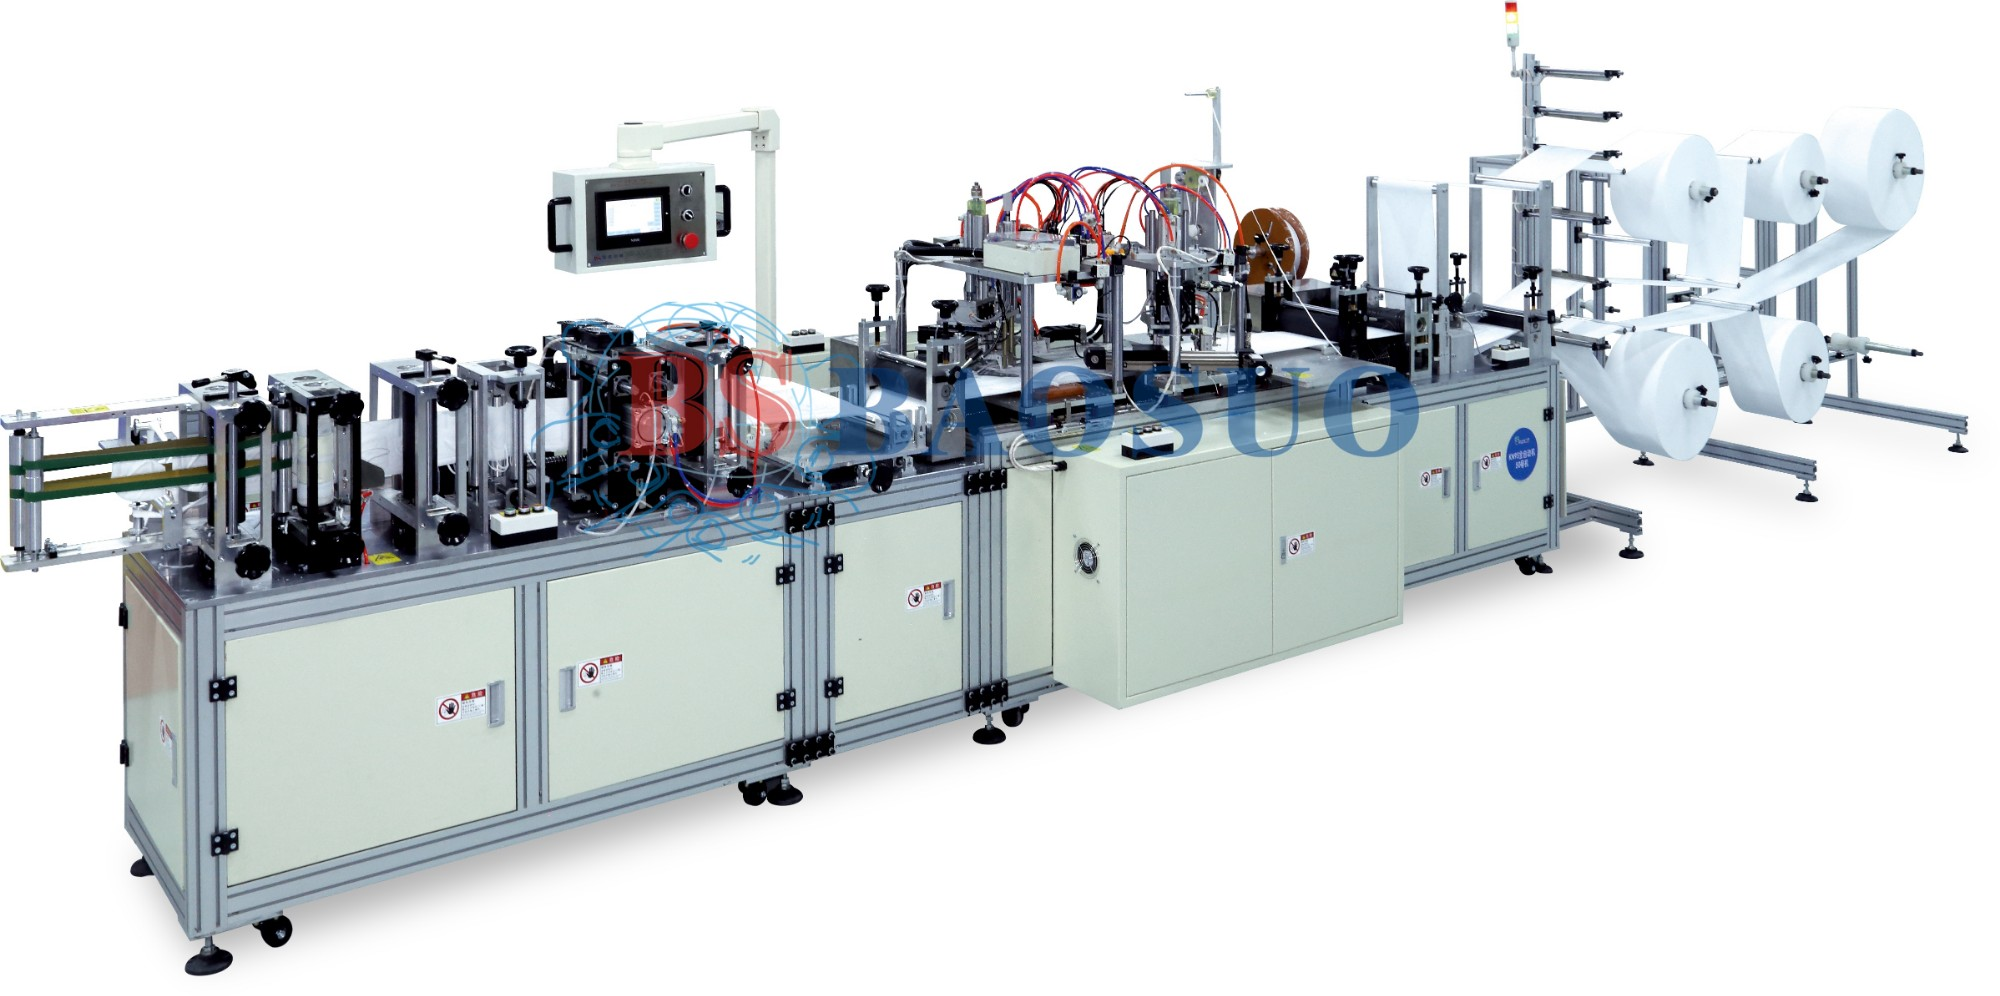 KN95 Fully Automatic Mask Production Line